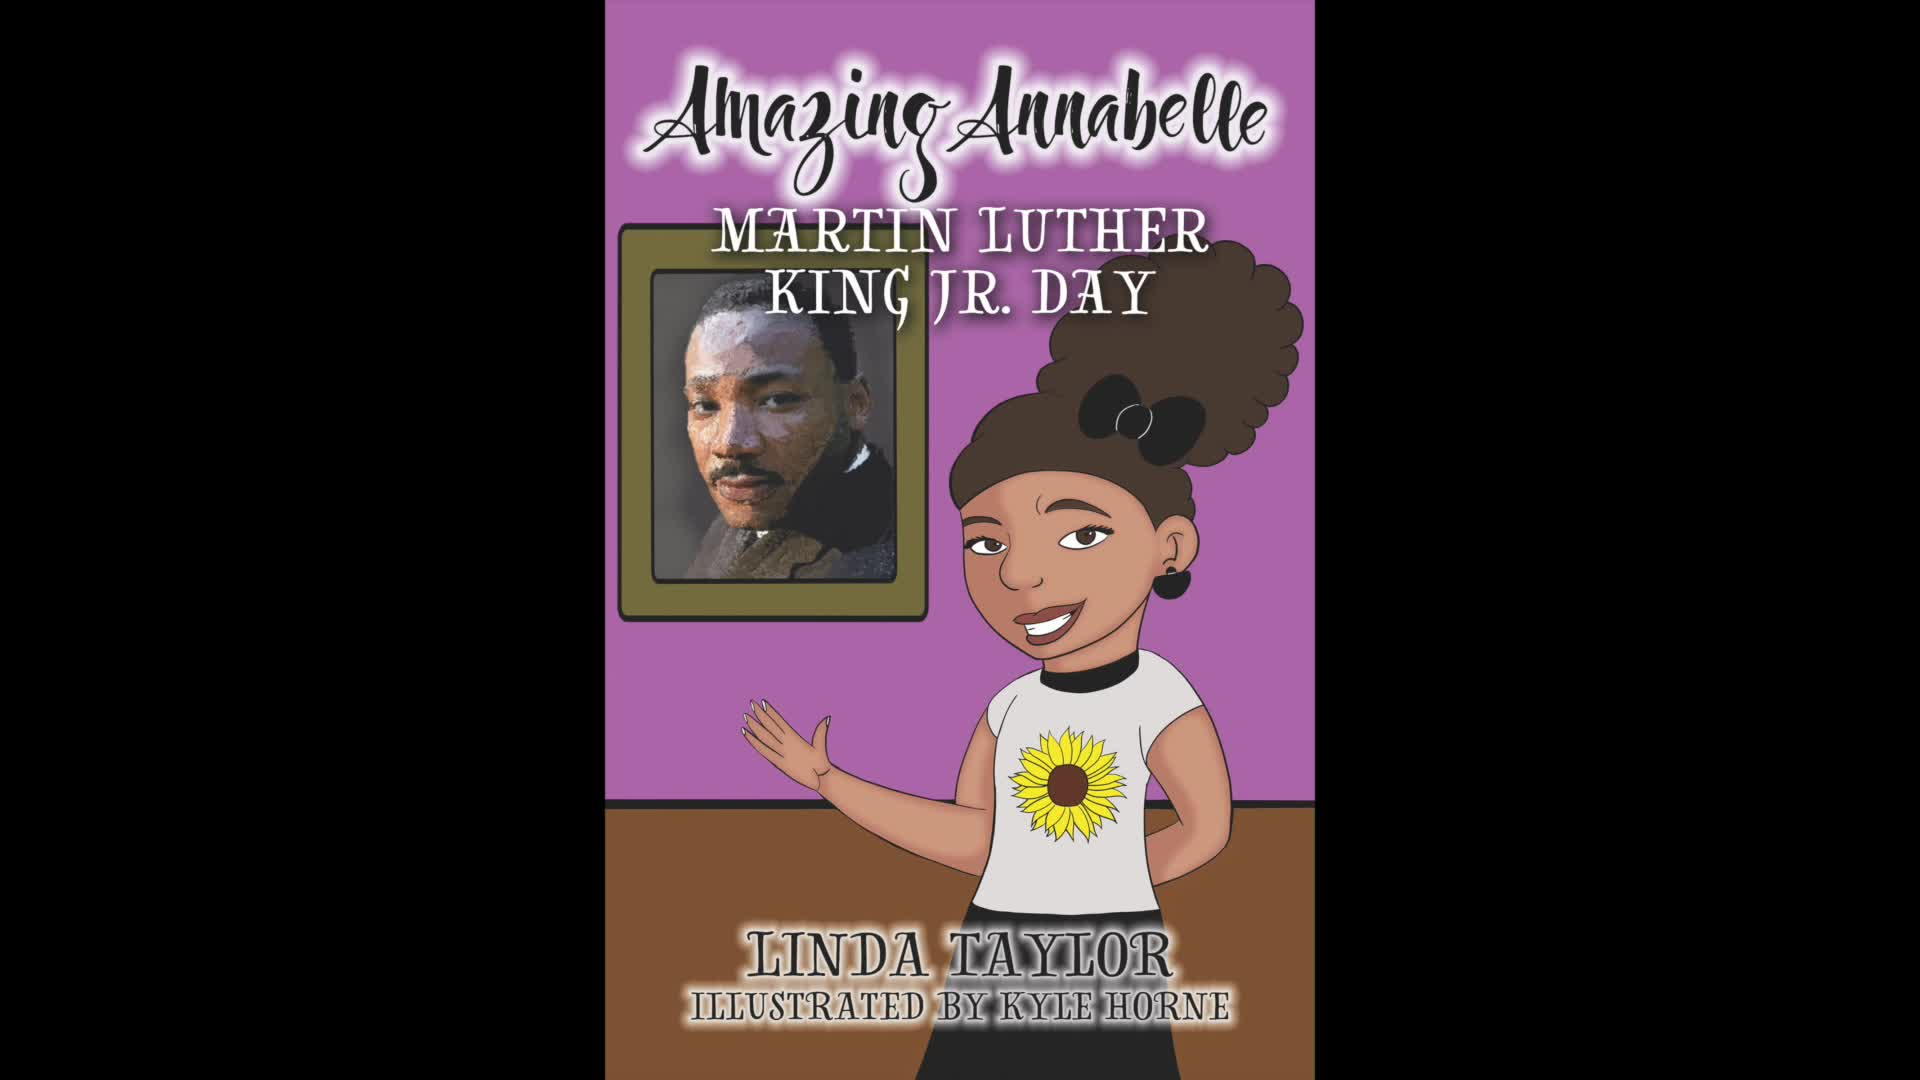 Amazing Annabelle Martin Luther King Jr Day Chapter 1